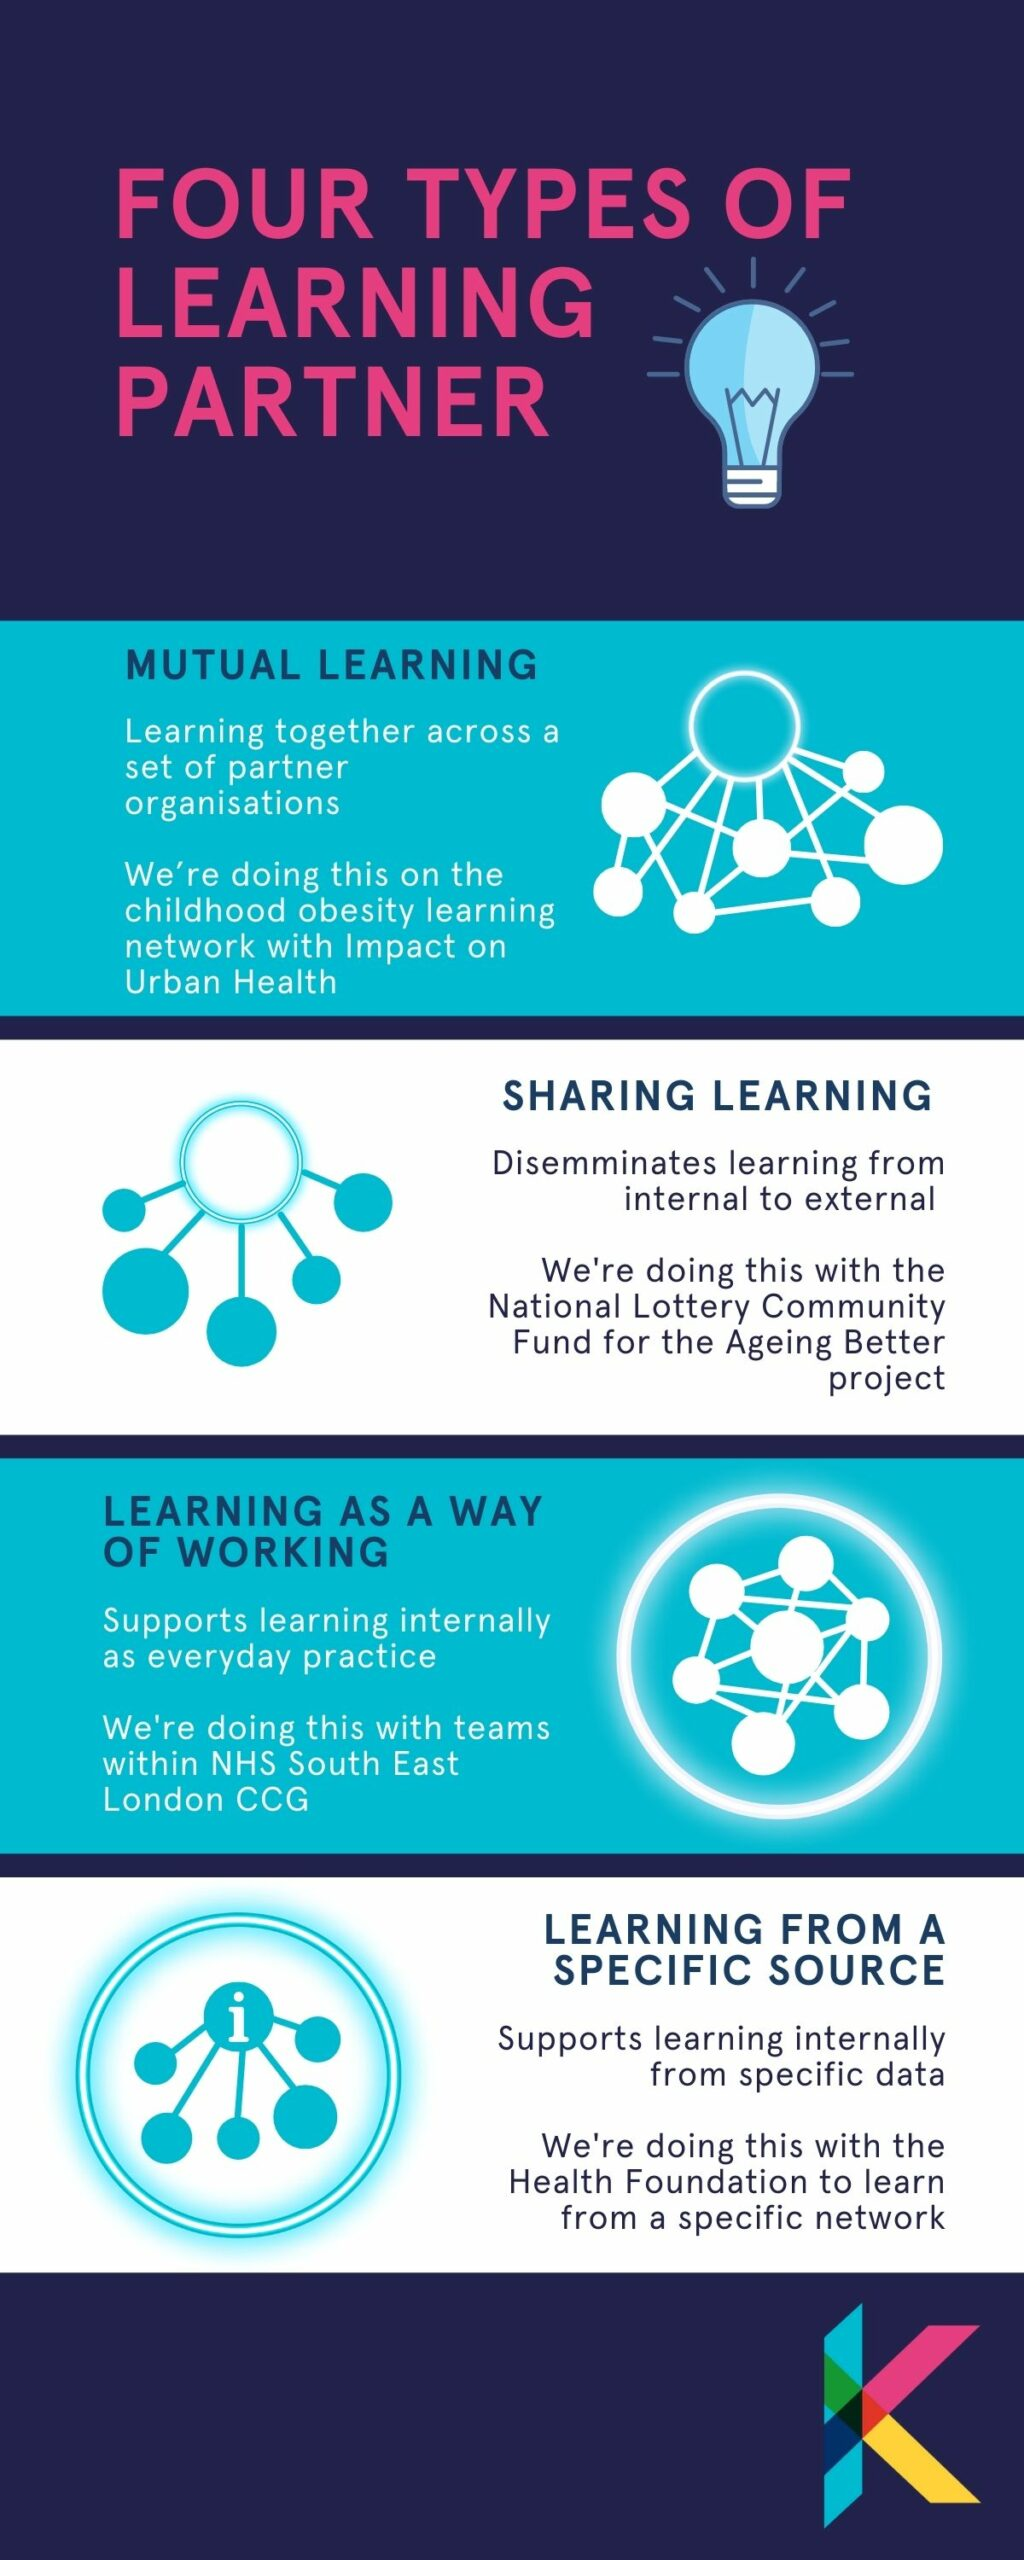 Four different types of learning partner